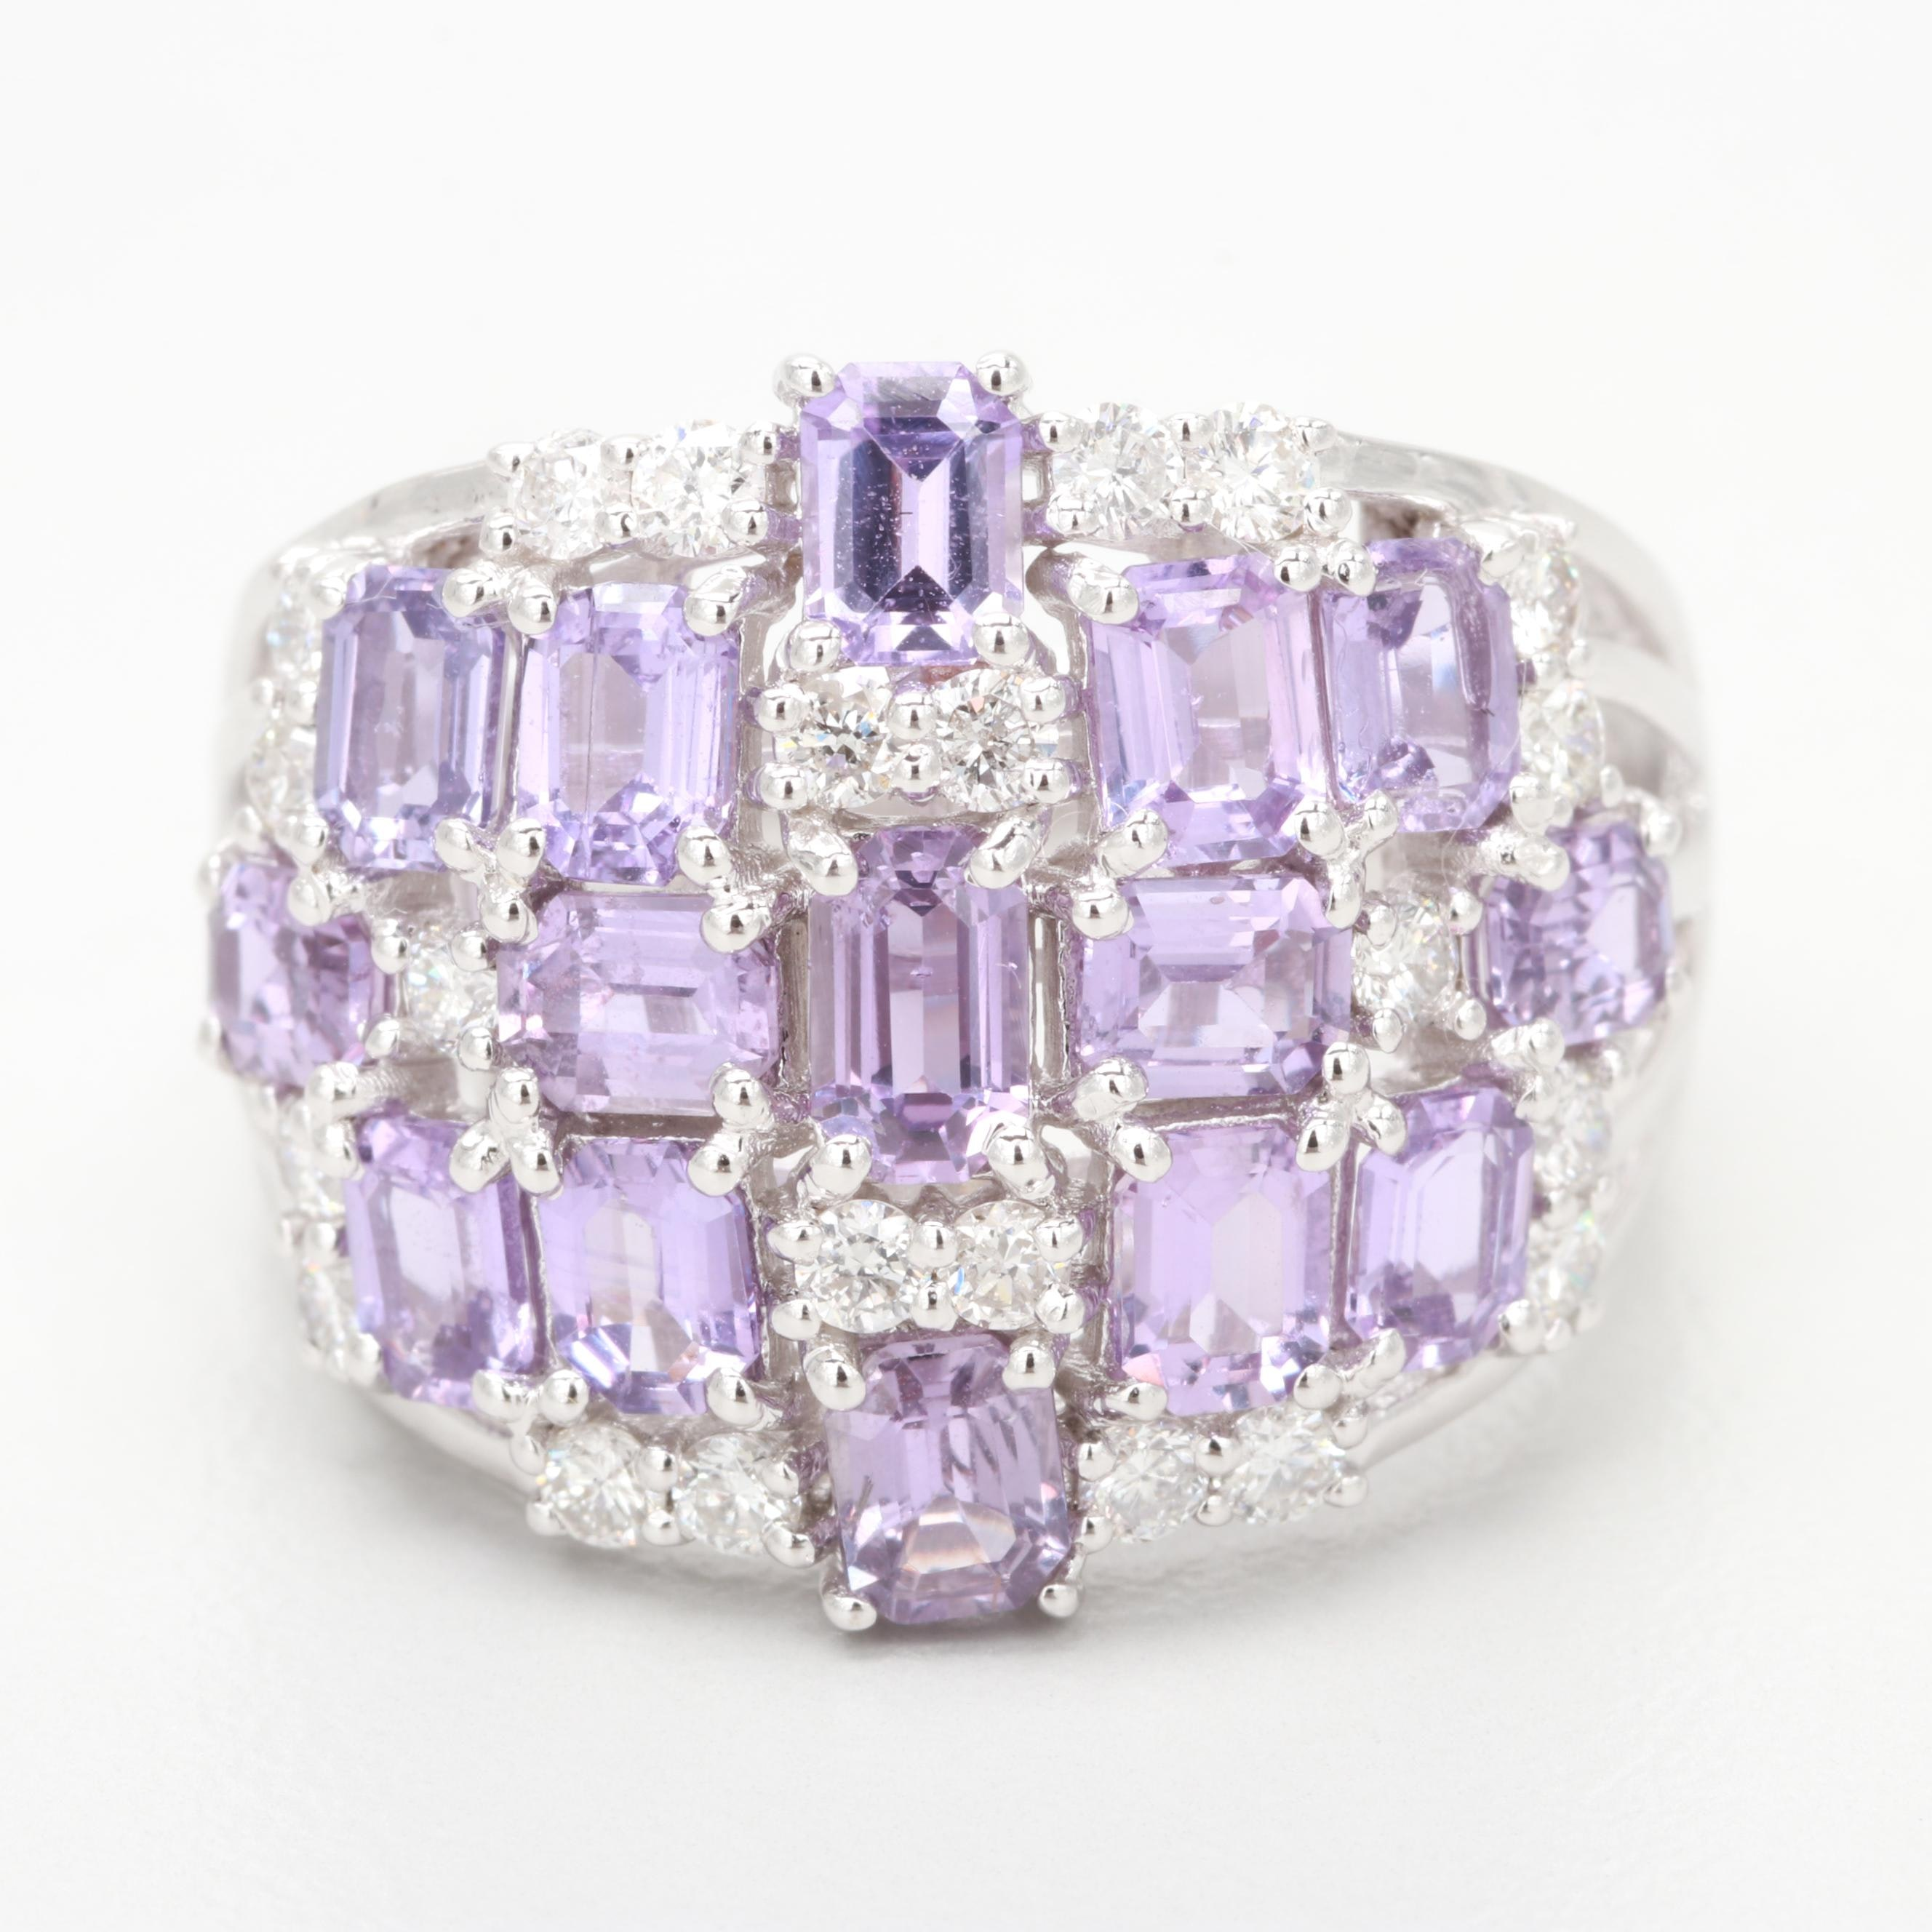 18K White Gold 3.16 CTW Purple Sapphire and Diamond Ring